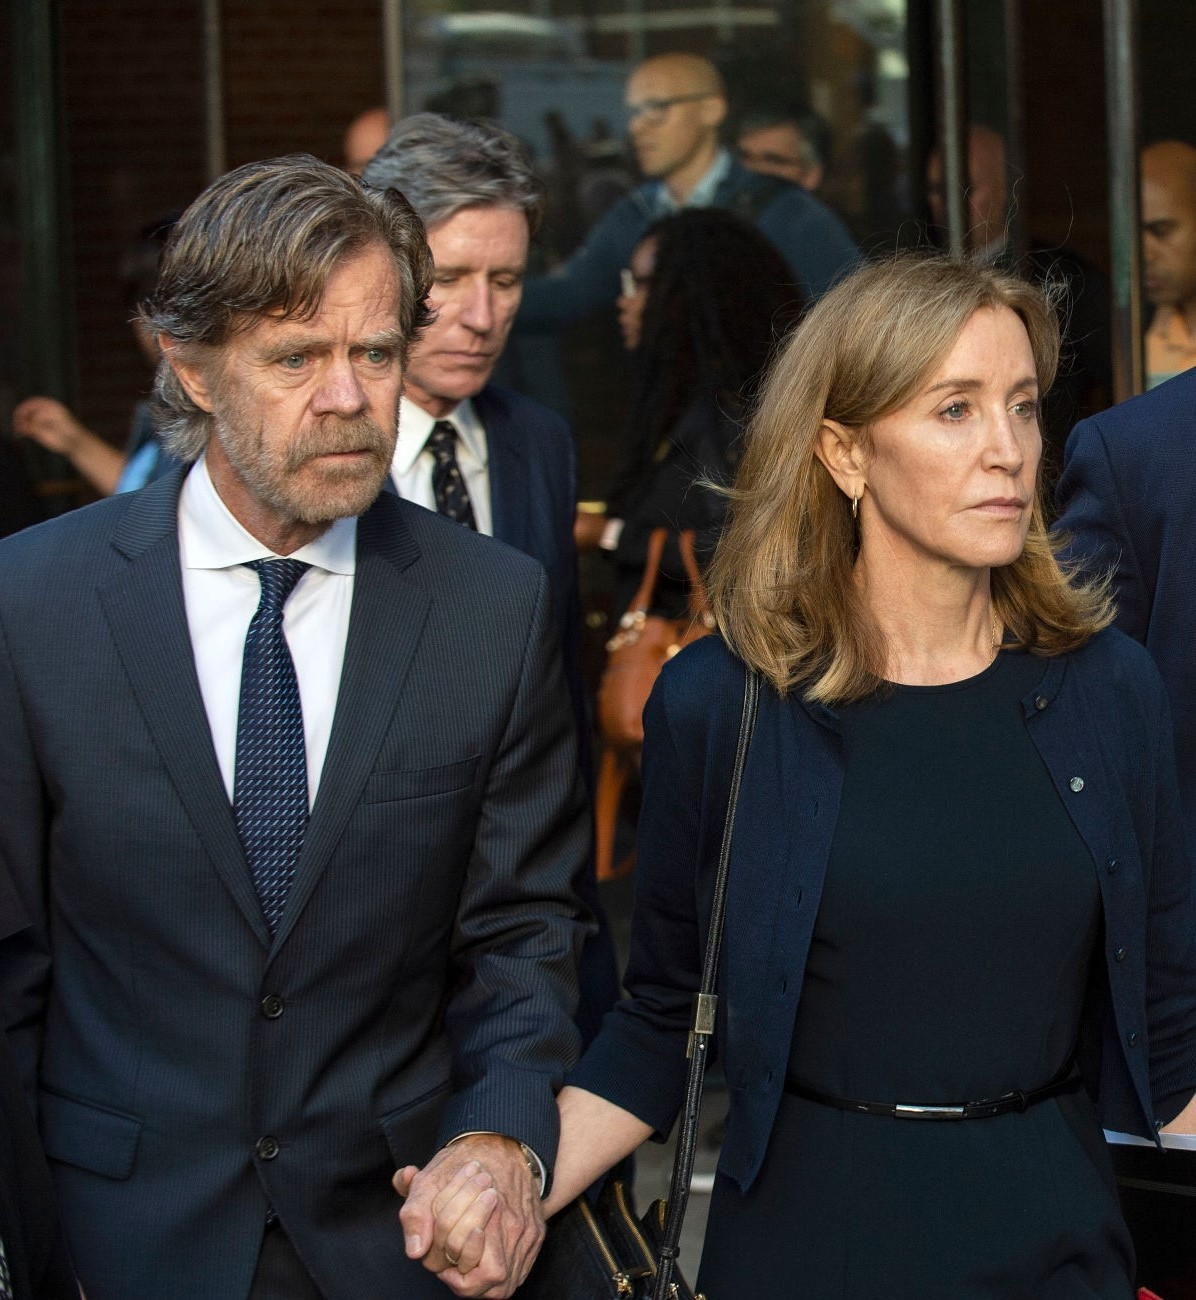 Felicity Huffman set free from jail two days early before a release date